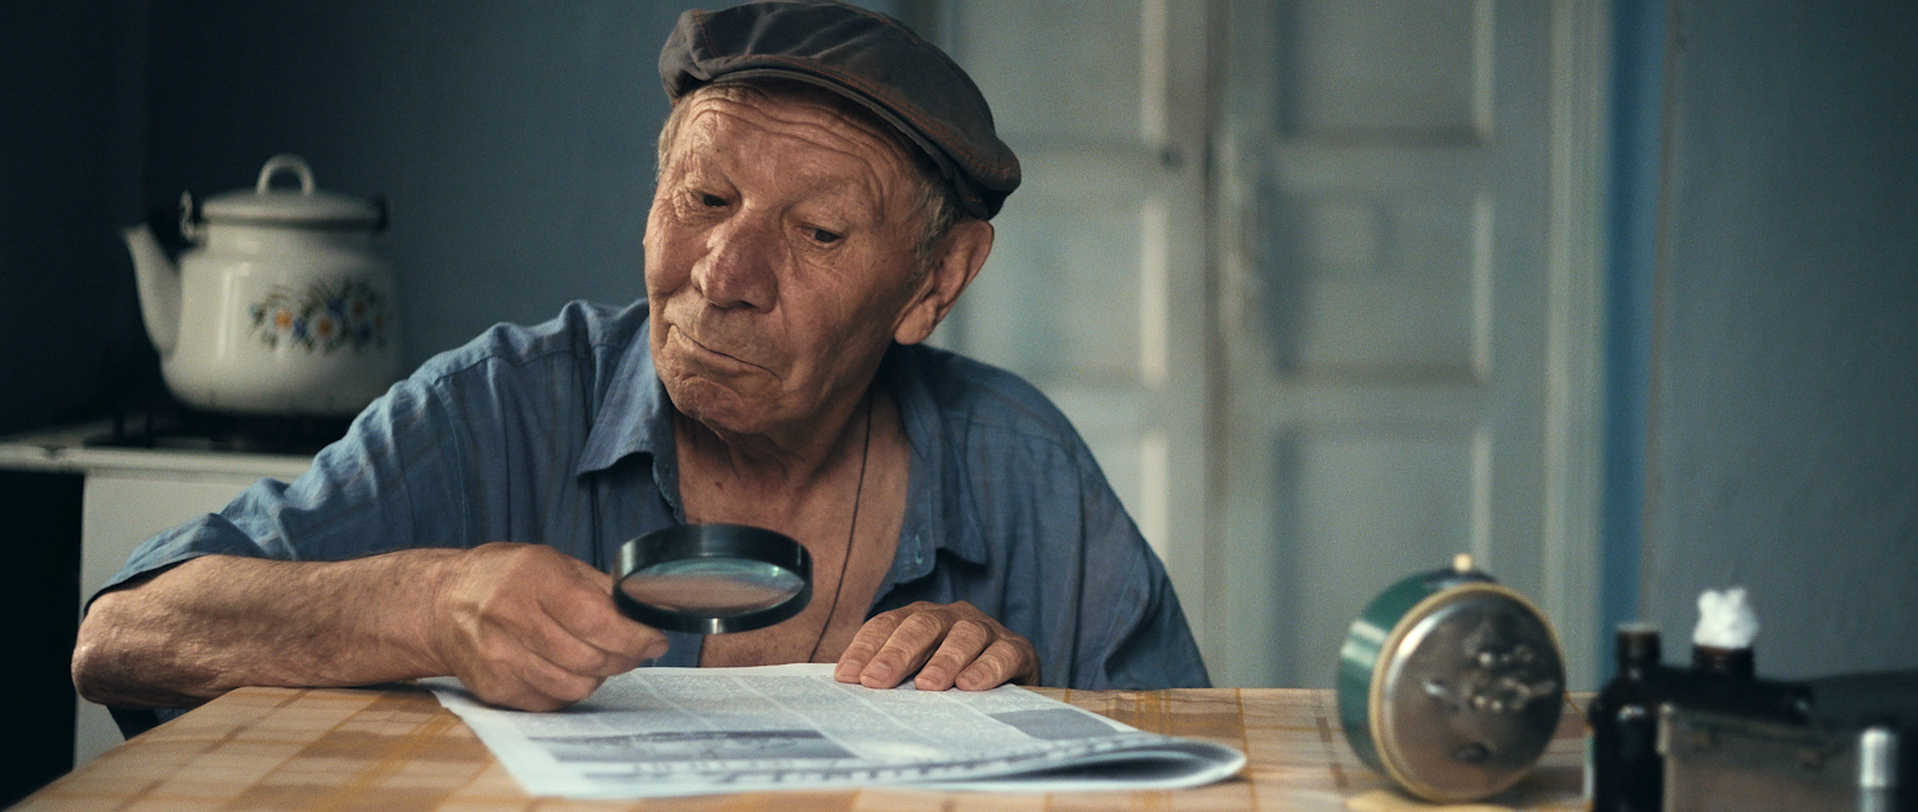 MILIARD - Uncle Ghoerghe reading newspapers.jpg